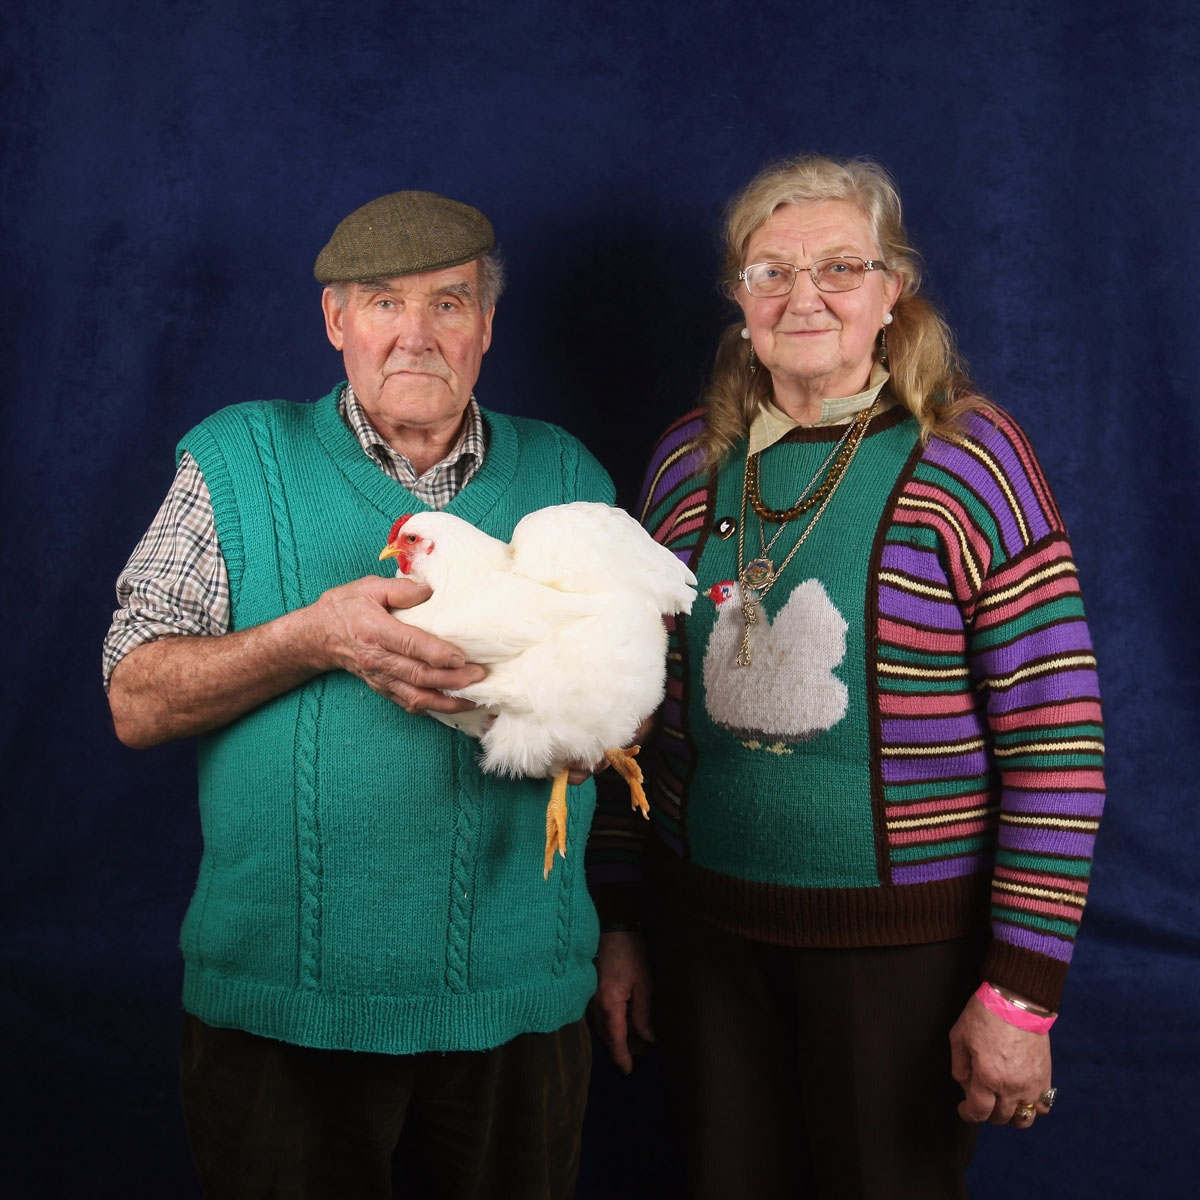 Allan and Dinah Procter, from Preston, show their 20 month old White Wyandotte Bantam hen which won a 1st prize in its breed at the Poultry Club's 2011 National Show on